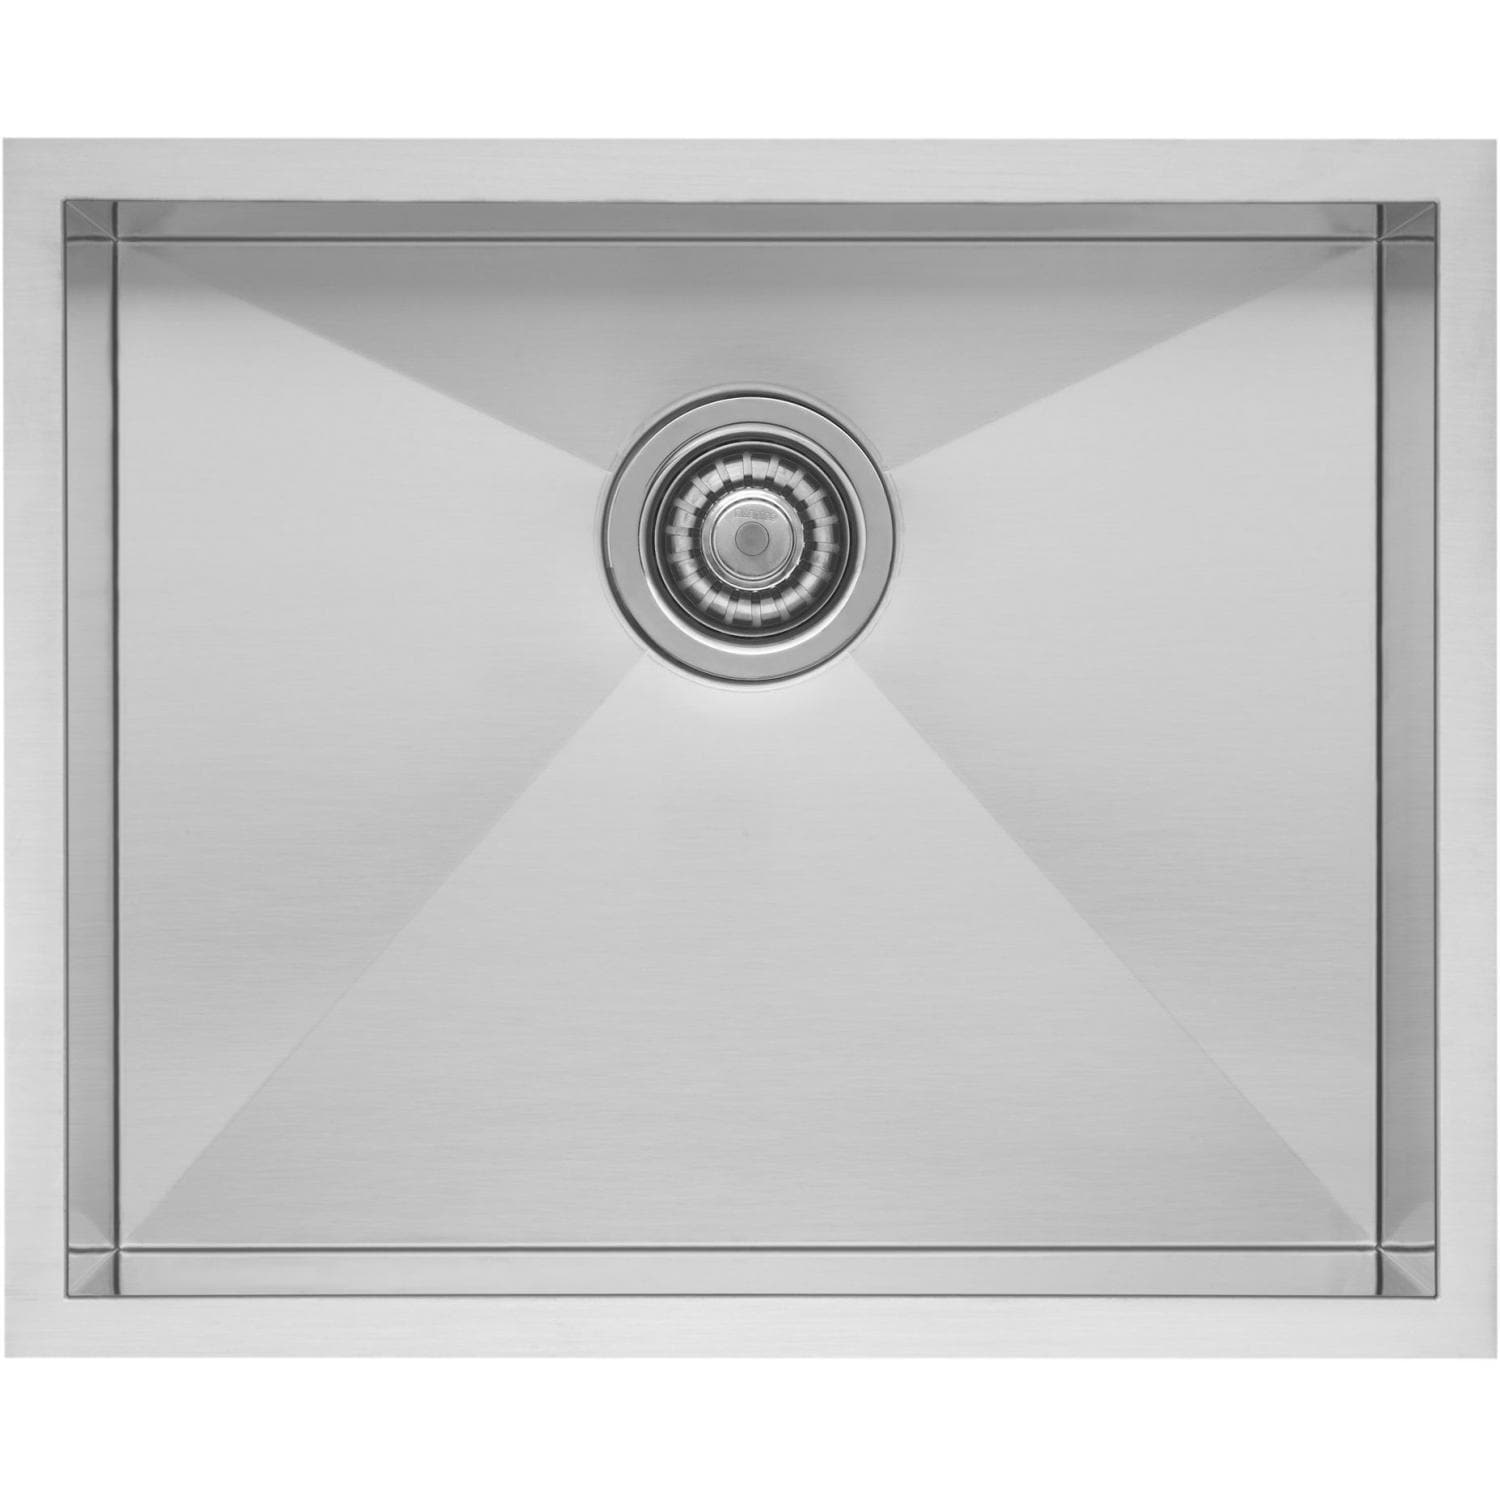 Blanco Precision Small 22 X 18 18-Gauge Single Bowl Stainless Steel Undermount Sink - 516210